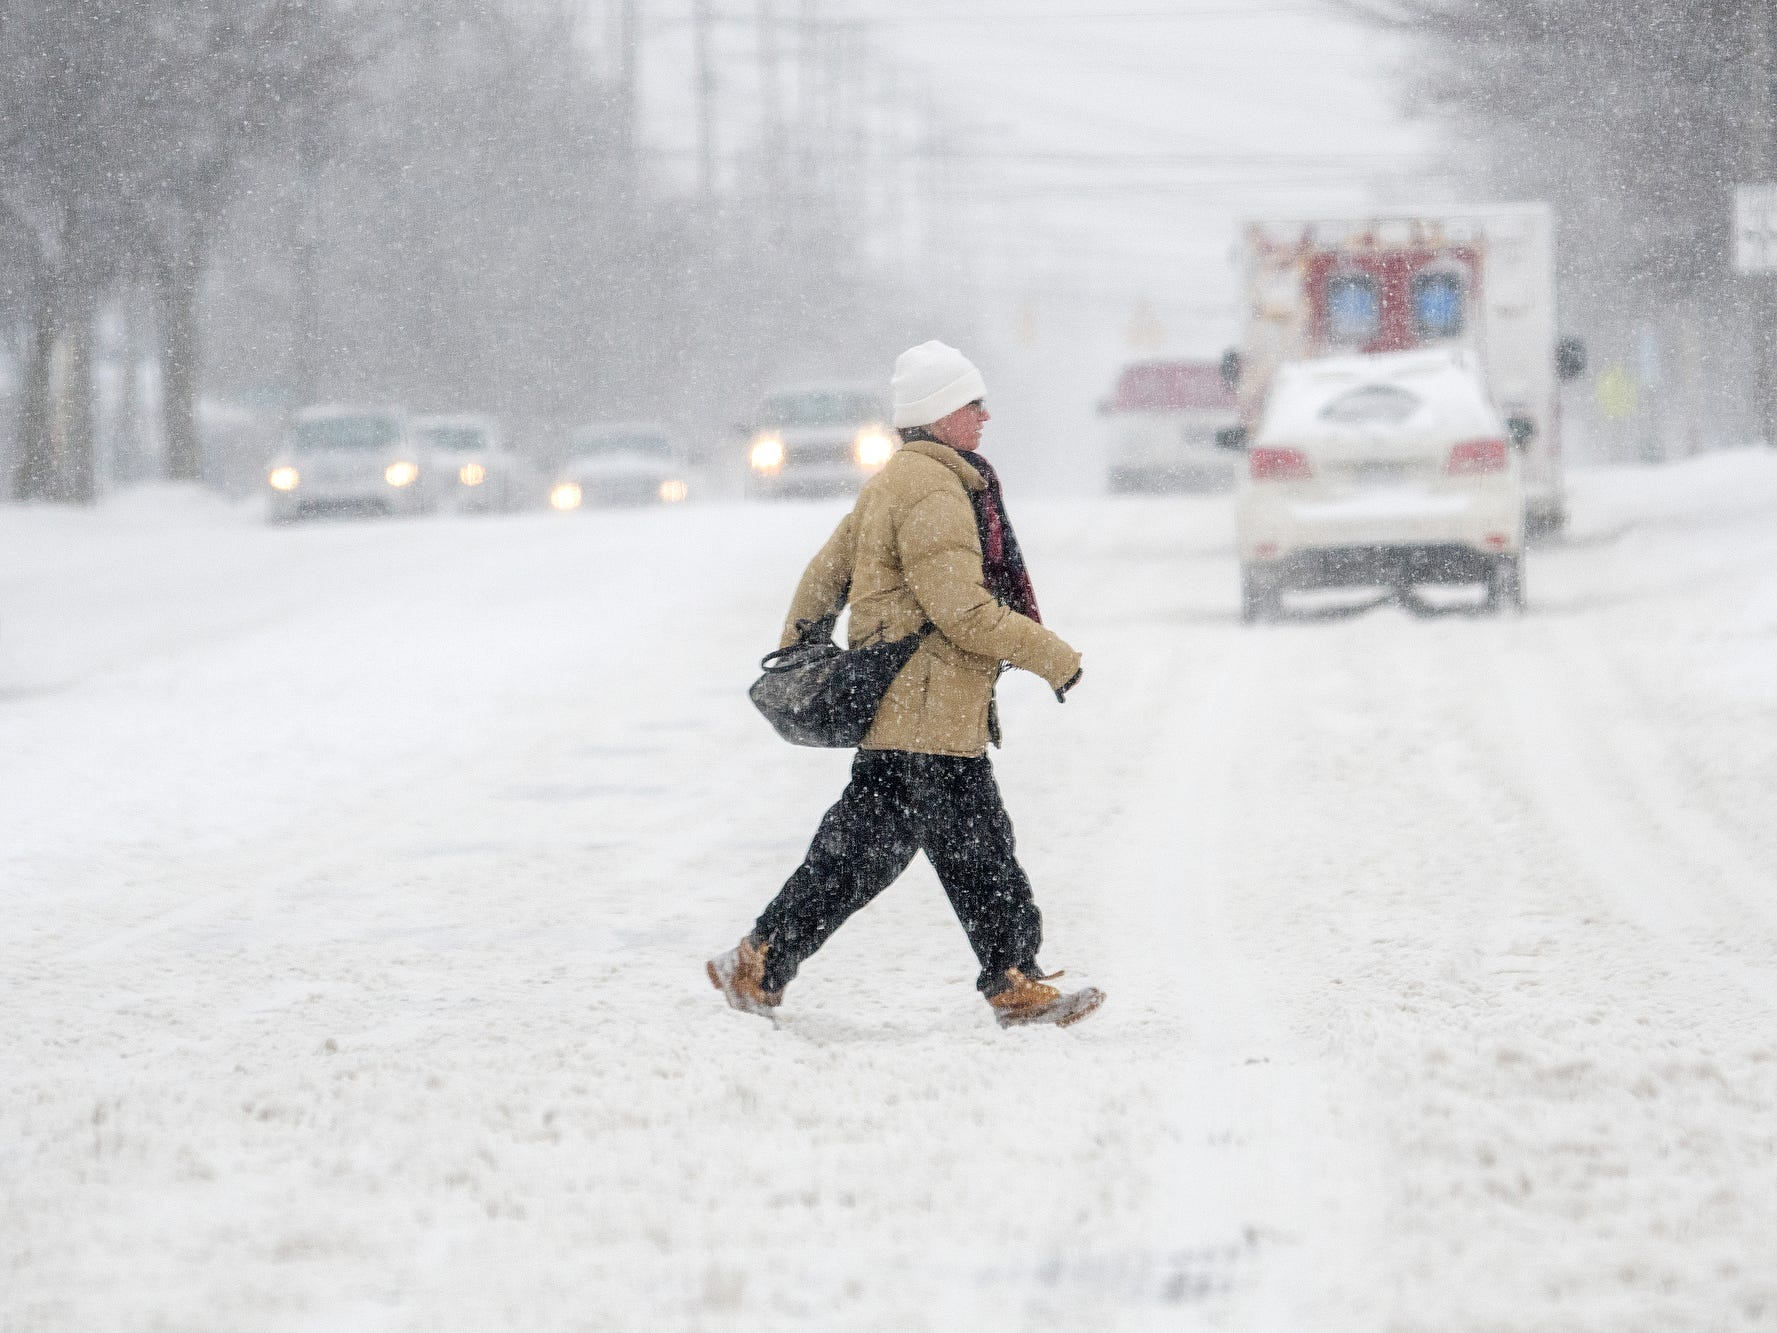 A pedestrian crosses Pennsylvania Avenue along Michigan Avenue on Monday, Jan. 28, 2019, in Lansing. A major snow storm hit the region Monday and will be followed by days of bitter, life-threatening cold.